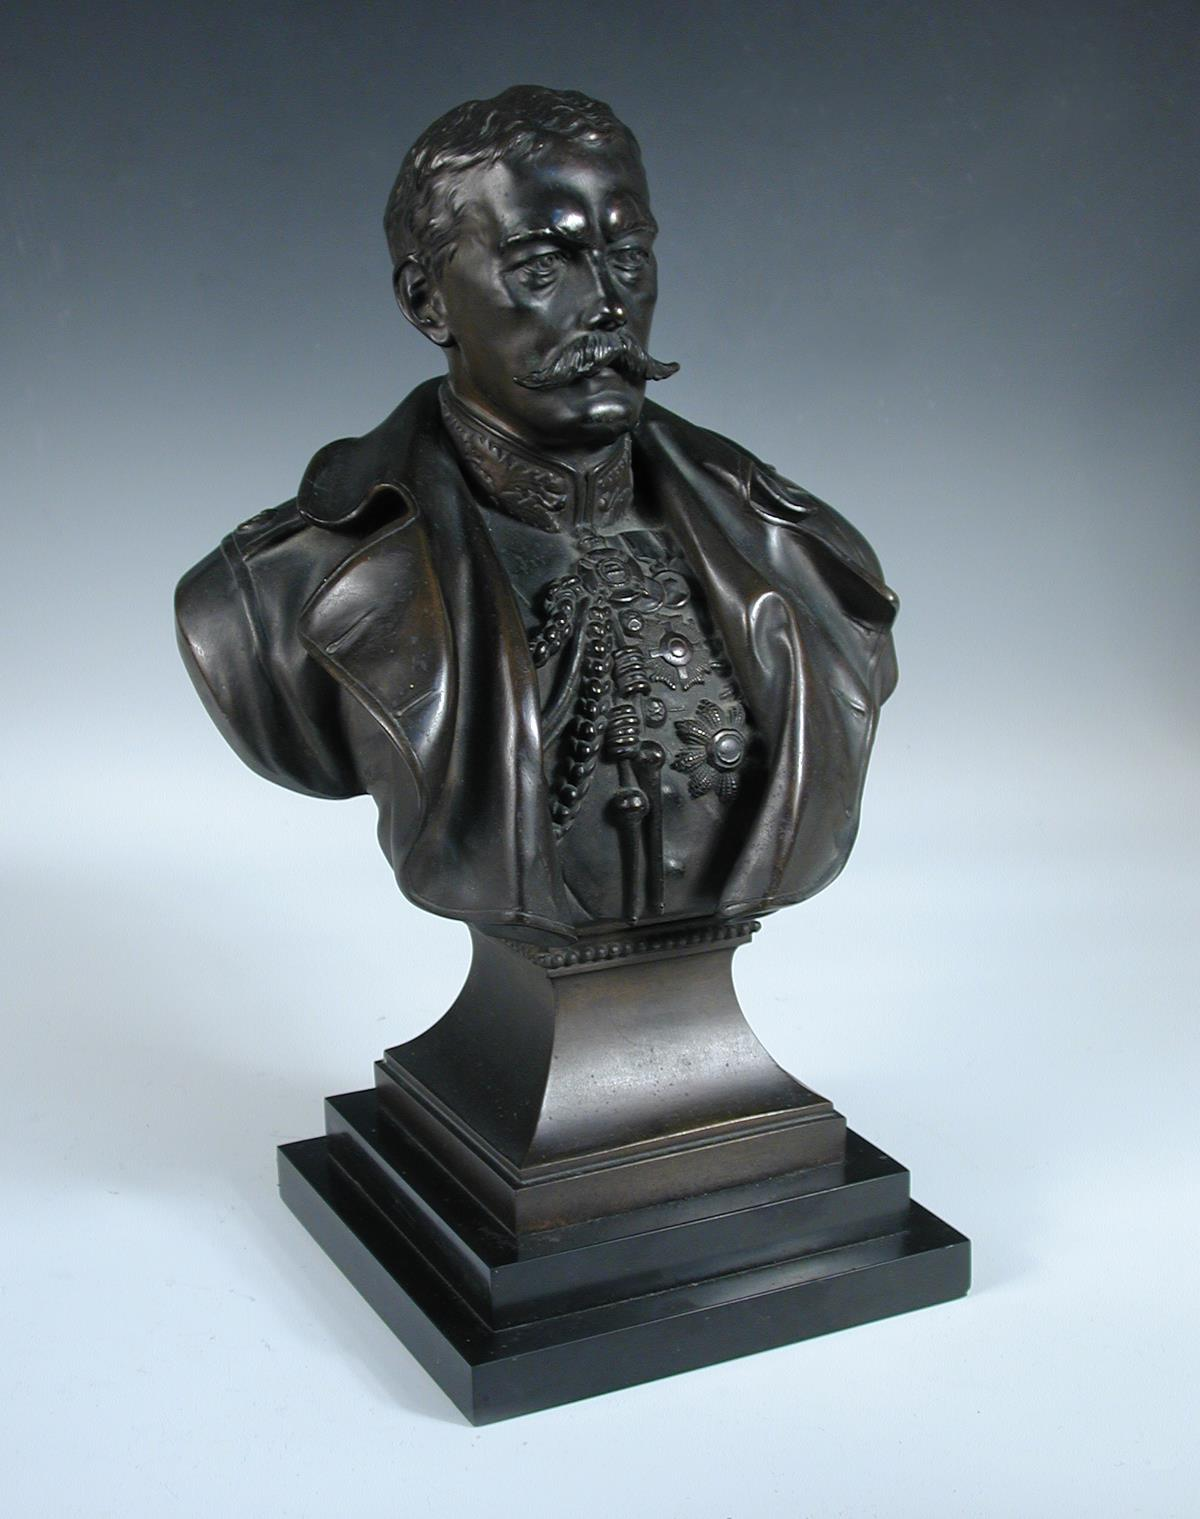 Lot 766 - Richard Claude Belt (1851-1920), a bronze bust of Lord Kitchener together with other memorabilia